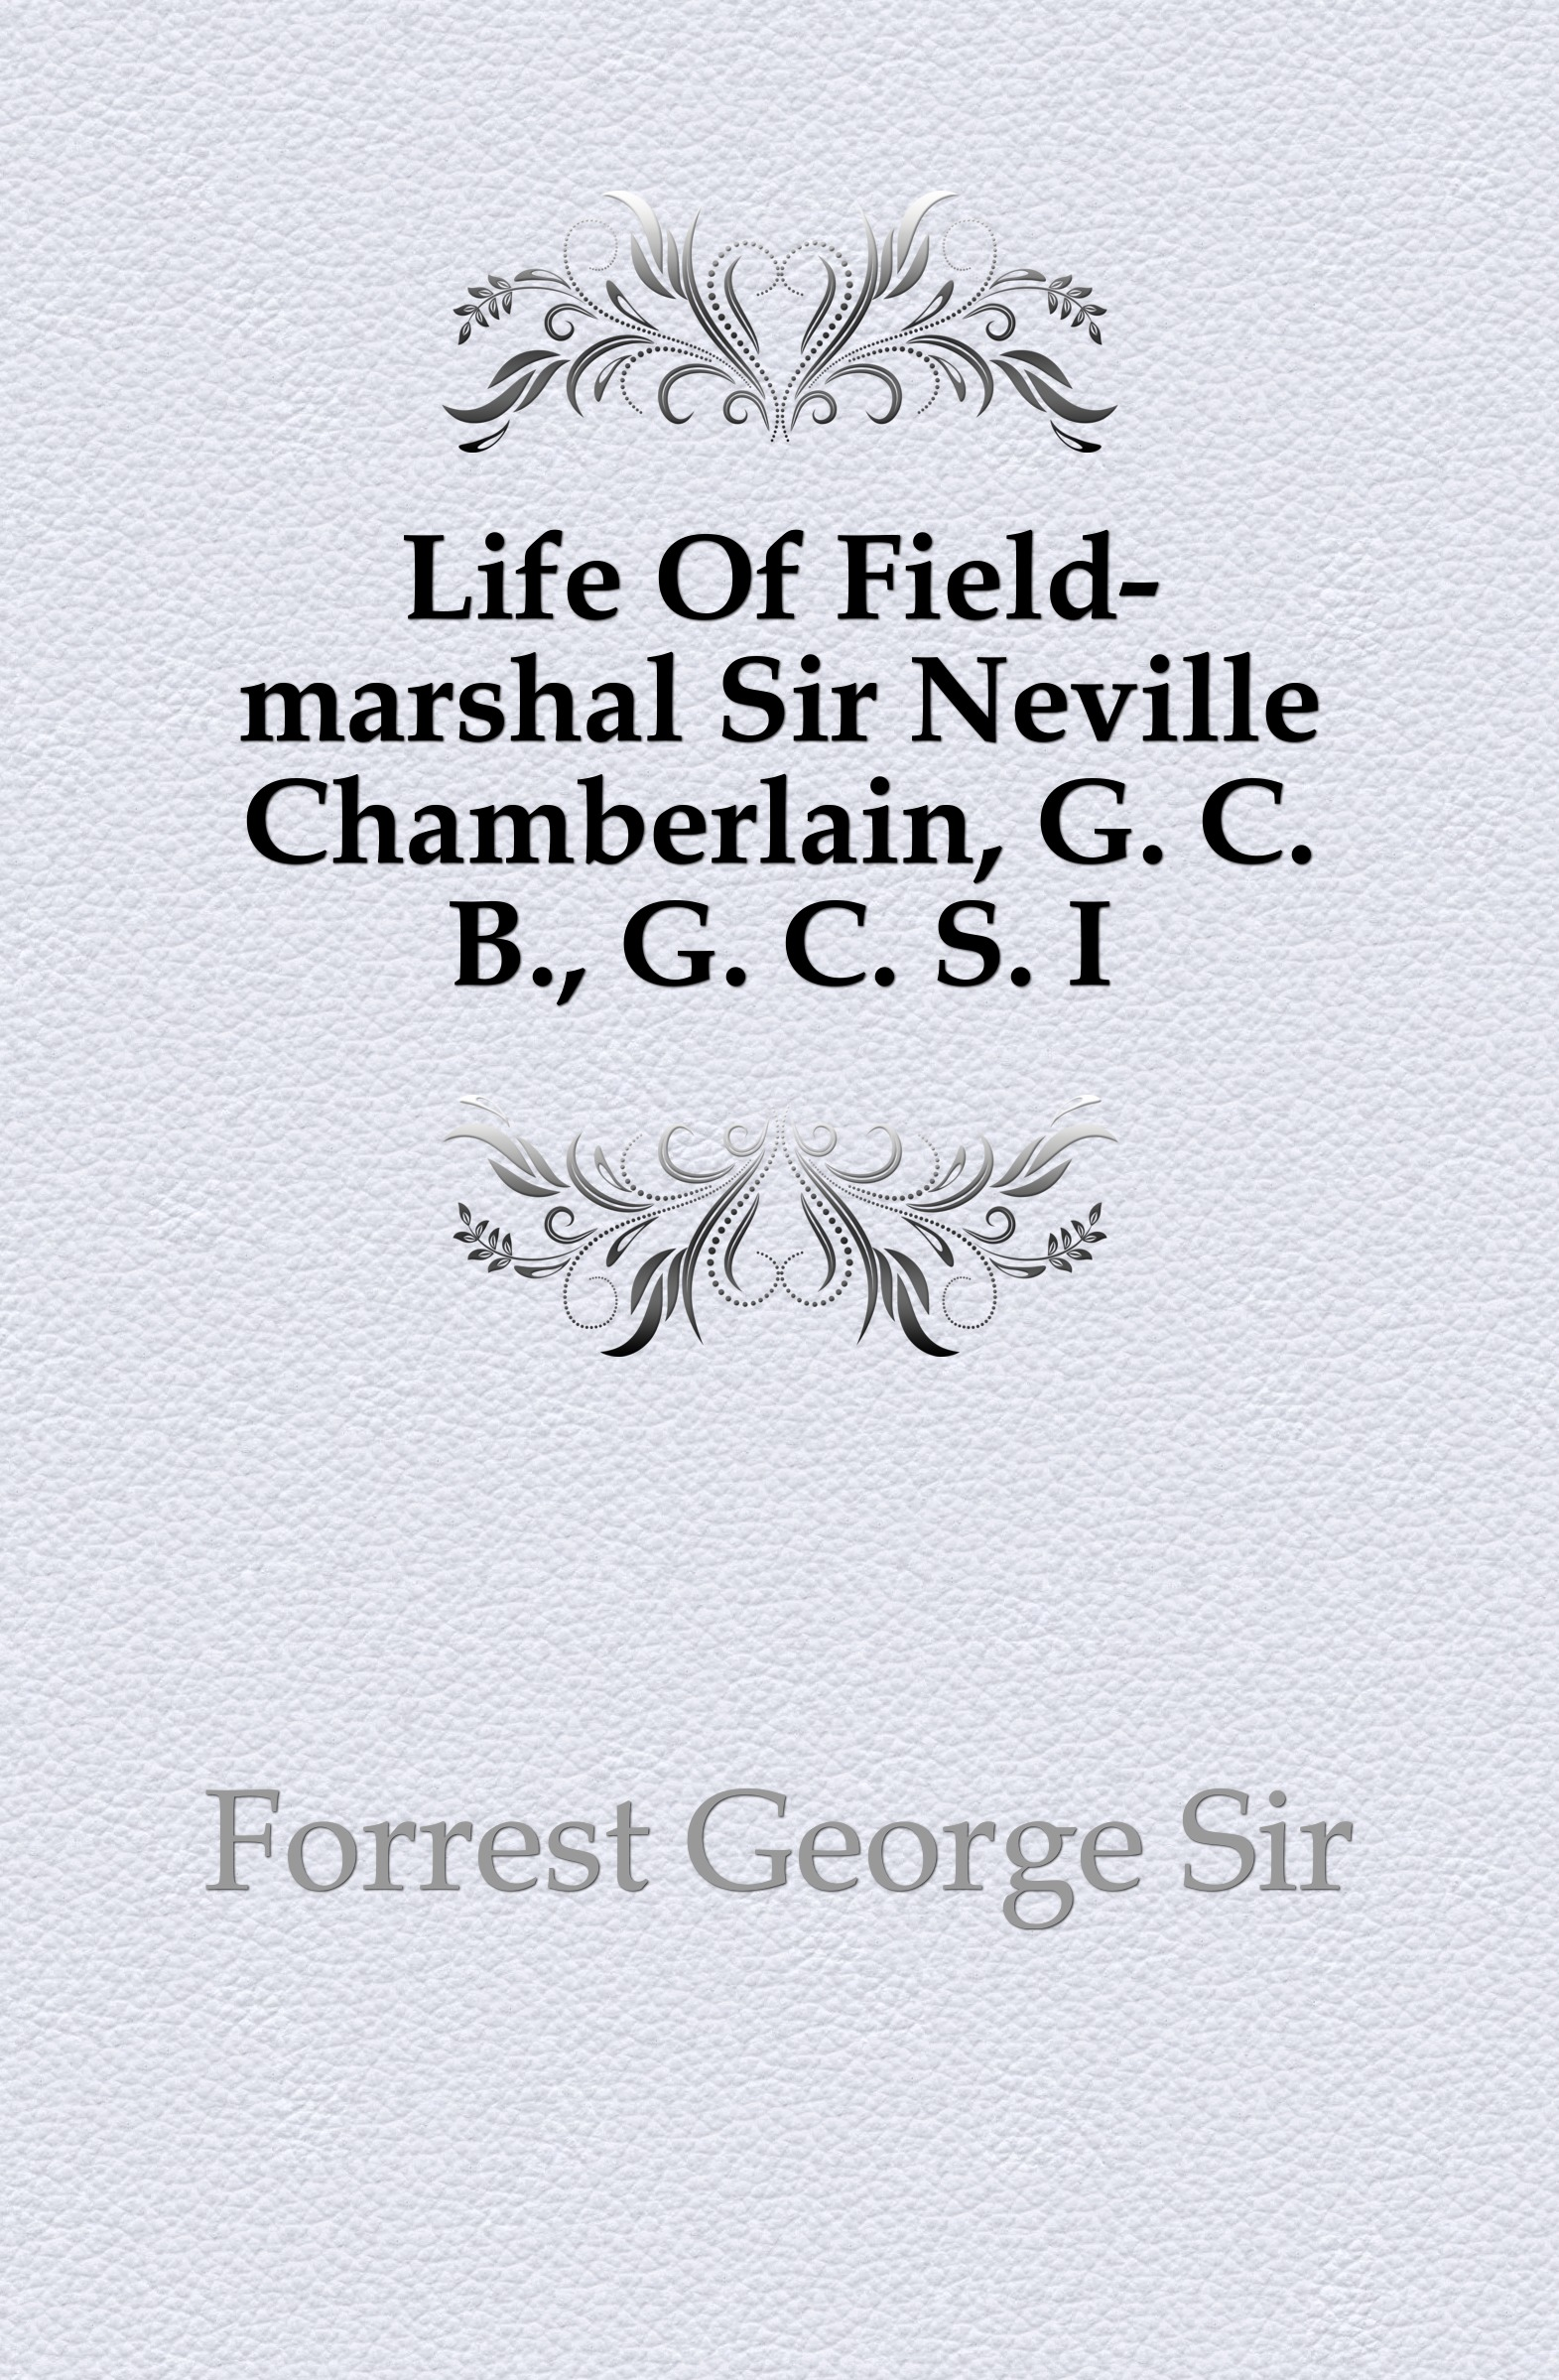 George Forrest Life Of Field-marshal Sir Neville Chamberlain, G. C. B., G. C. S. I george forrest the life of lord roberts k g v c